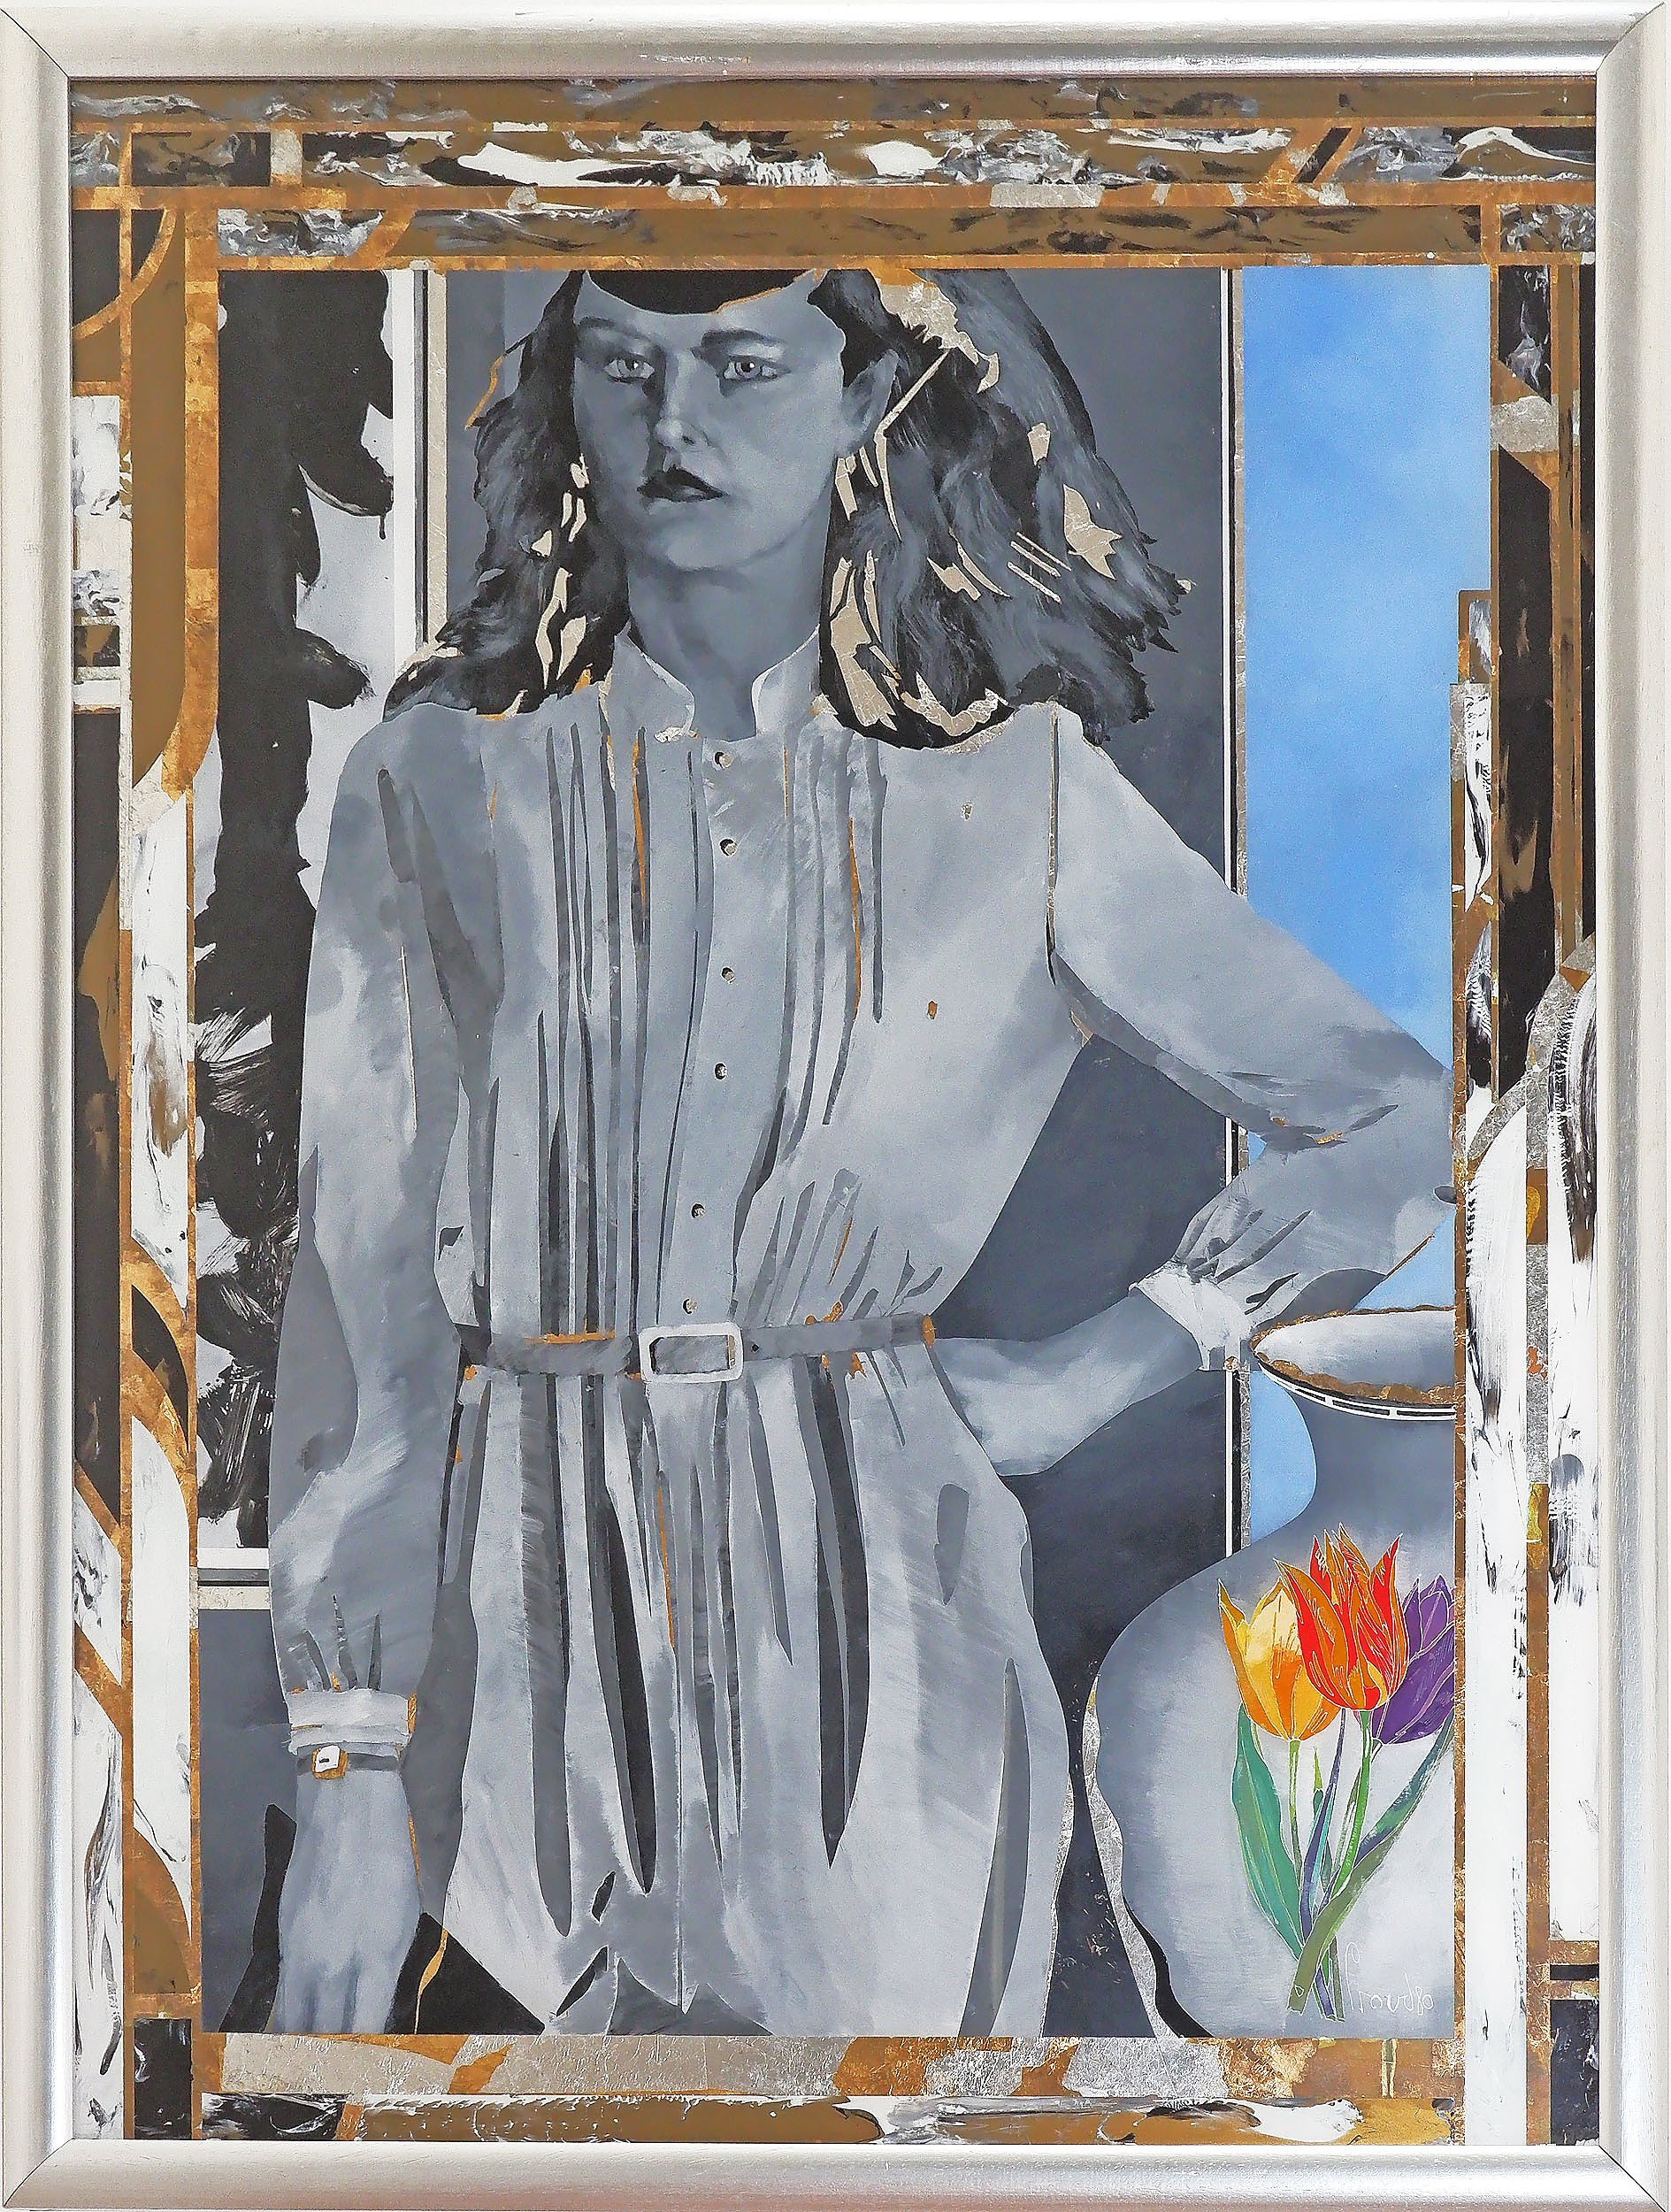 'Geoffrey Proud (born 1946), Untitled (Framed Woman with Painted Vase) 1980, Oil on Glass'